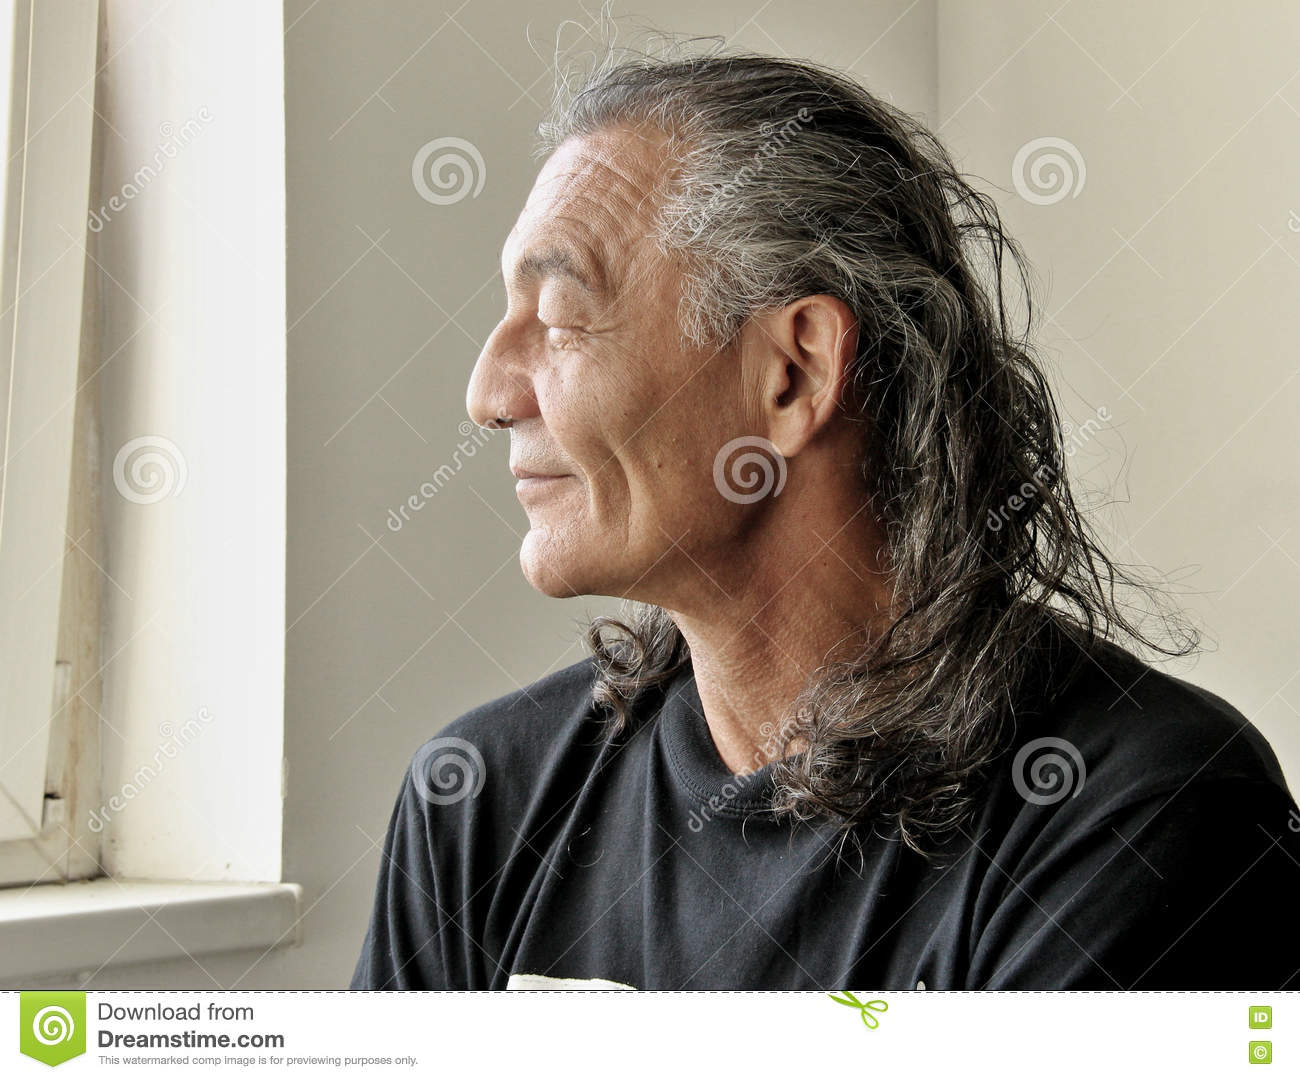 Profile of the older man